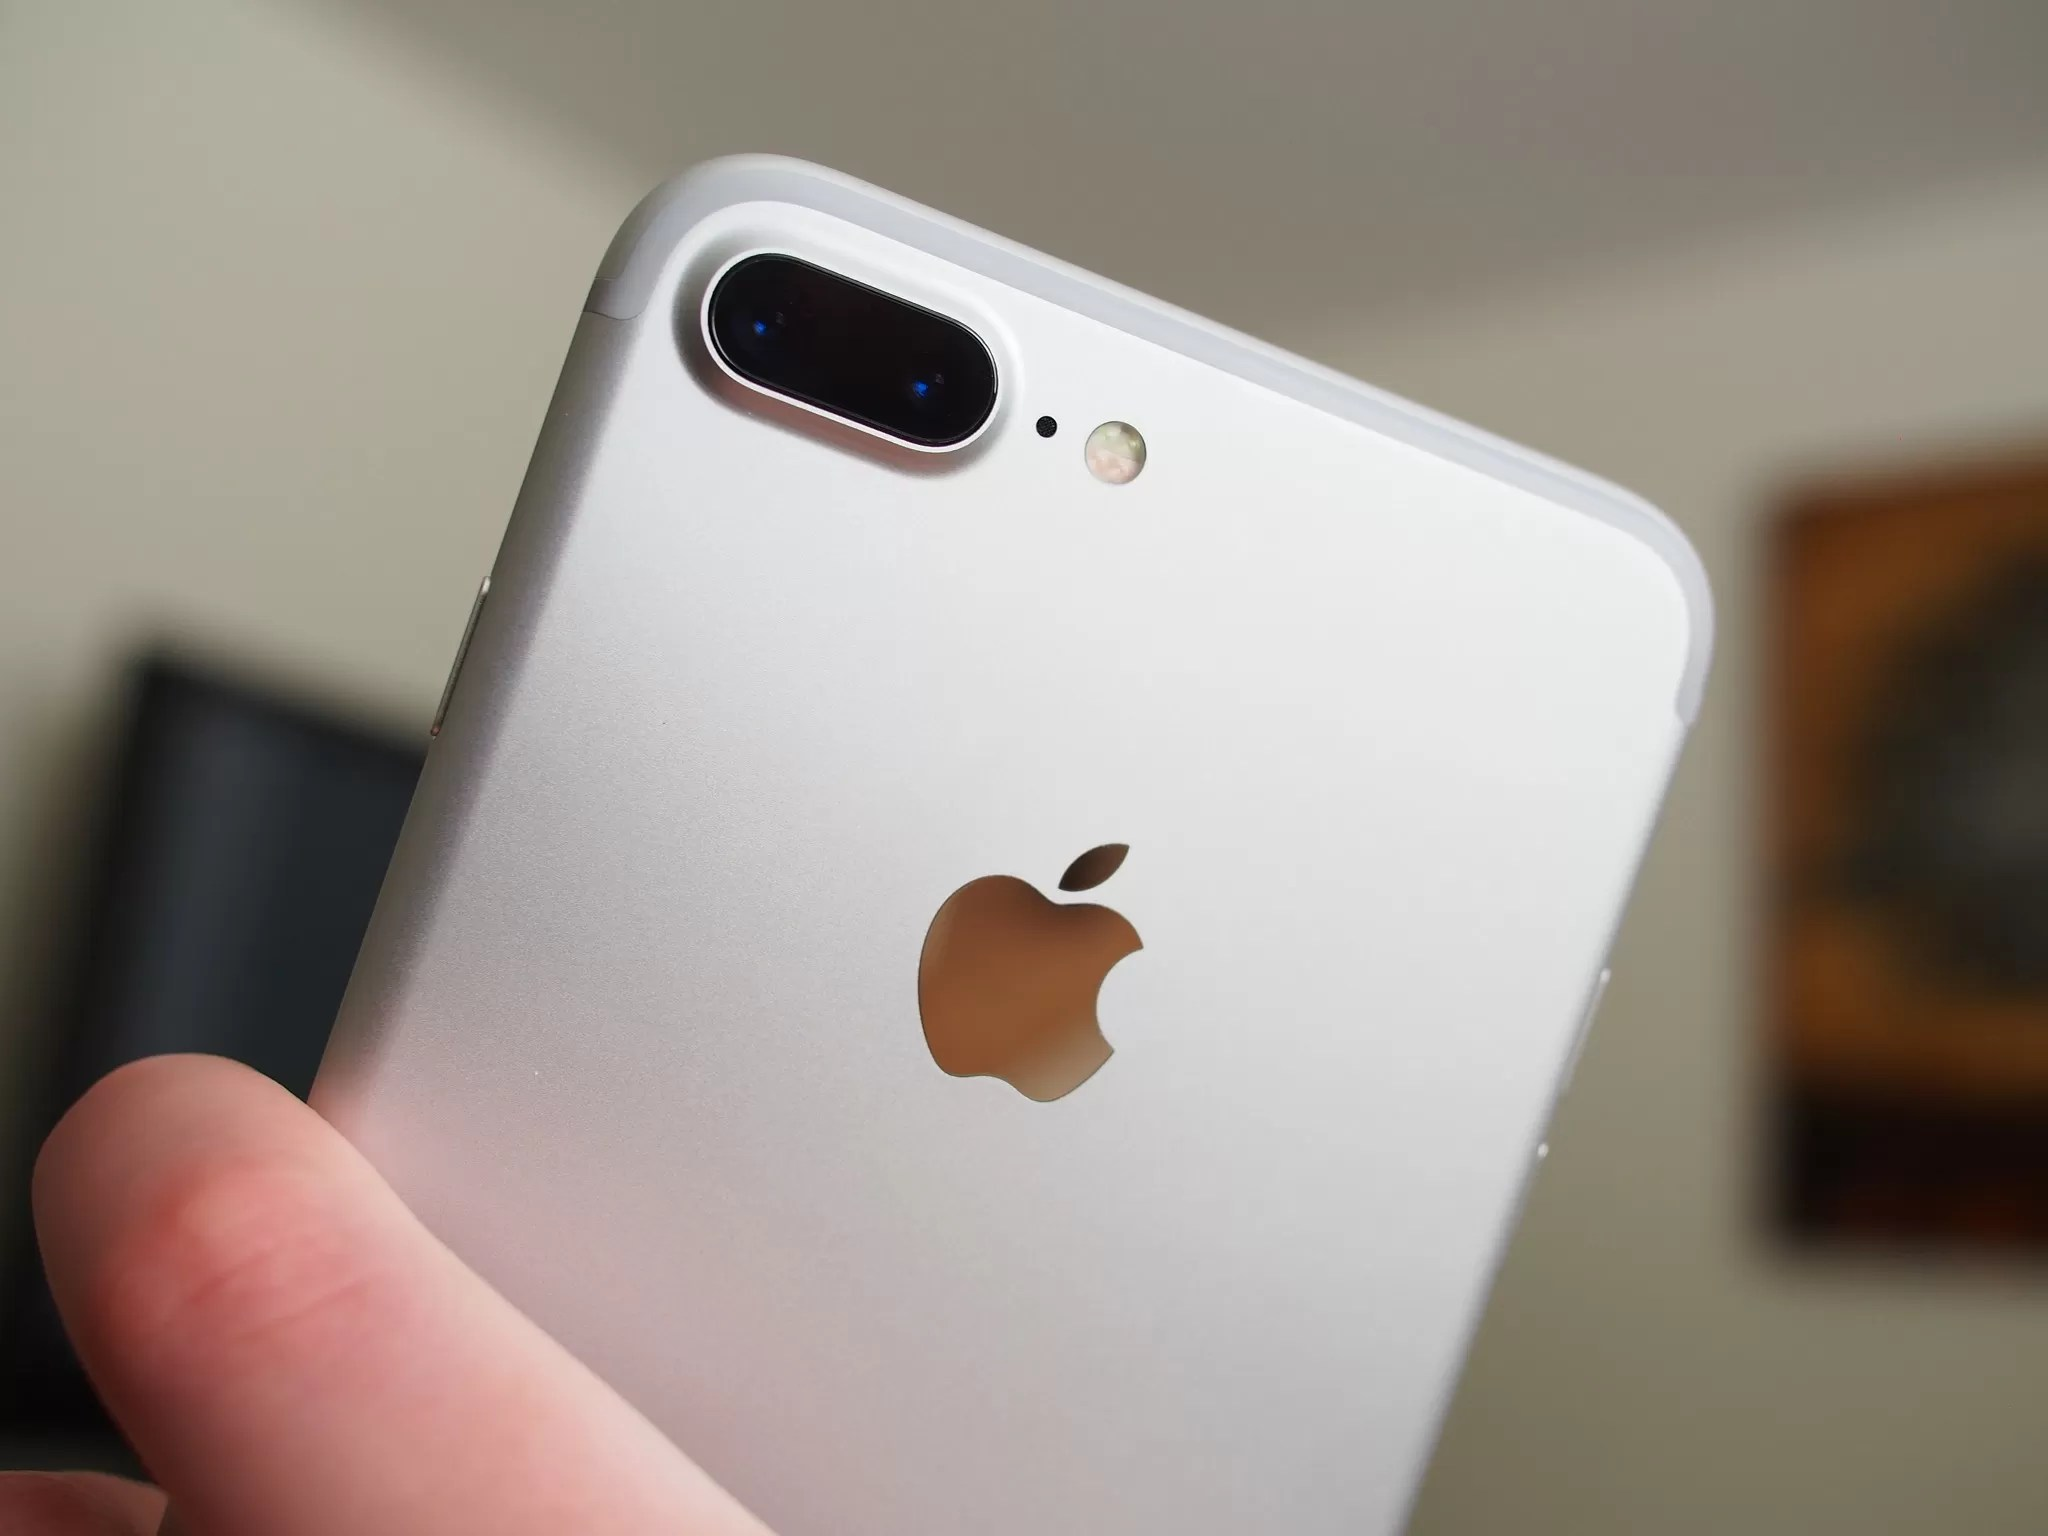 Apple iPhone 7 Plus Review Photo Gallery - TechSpot